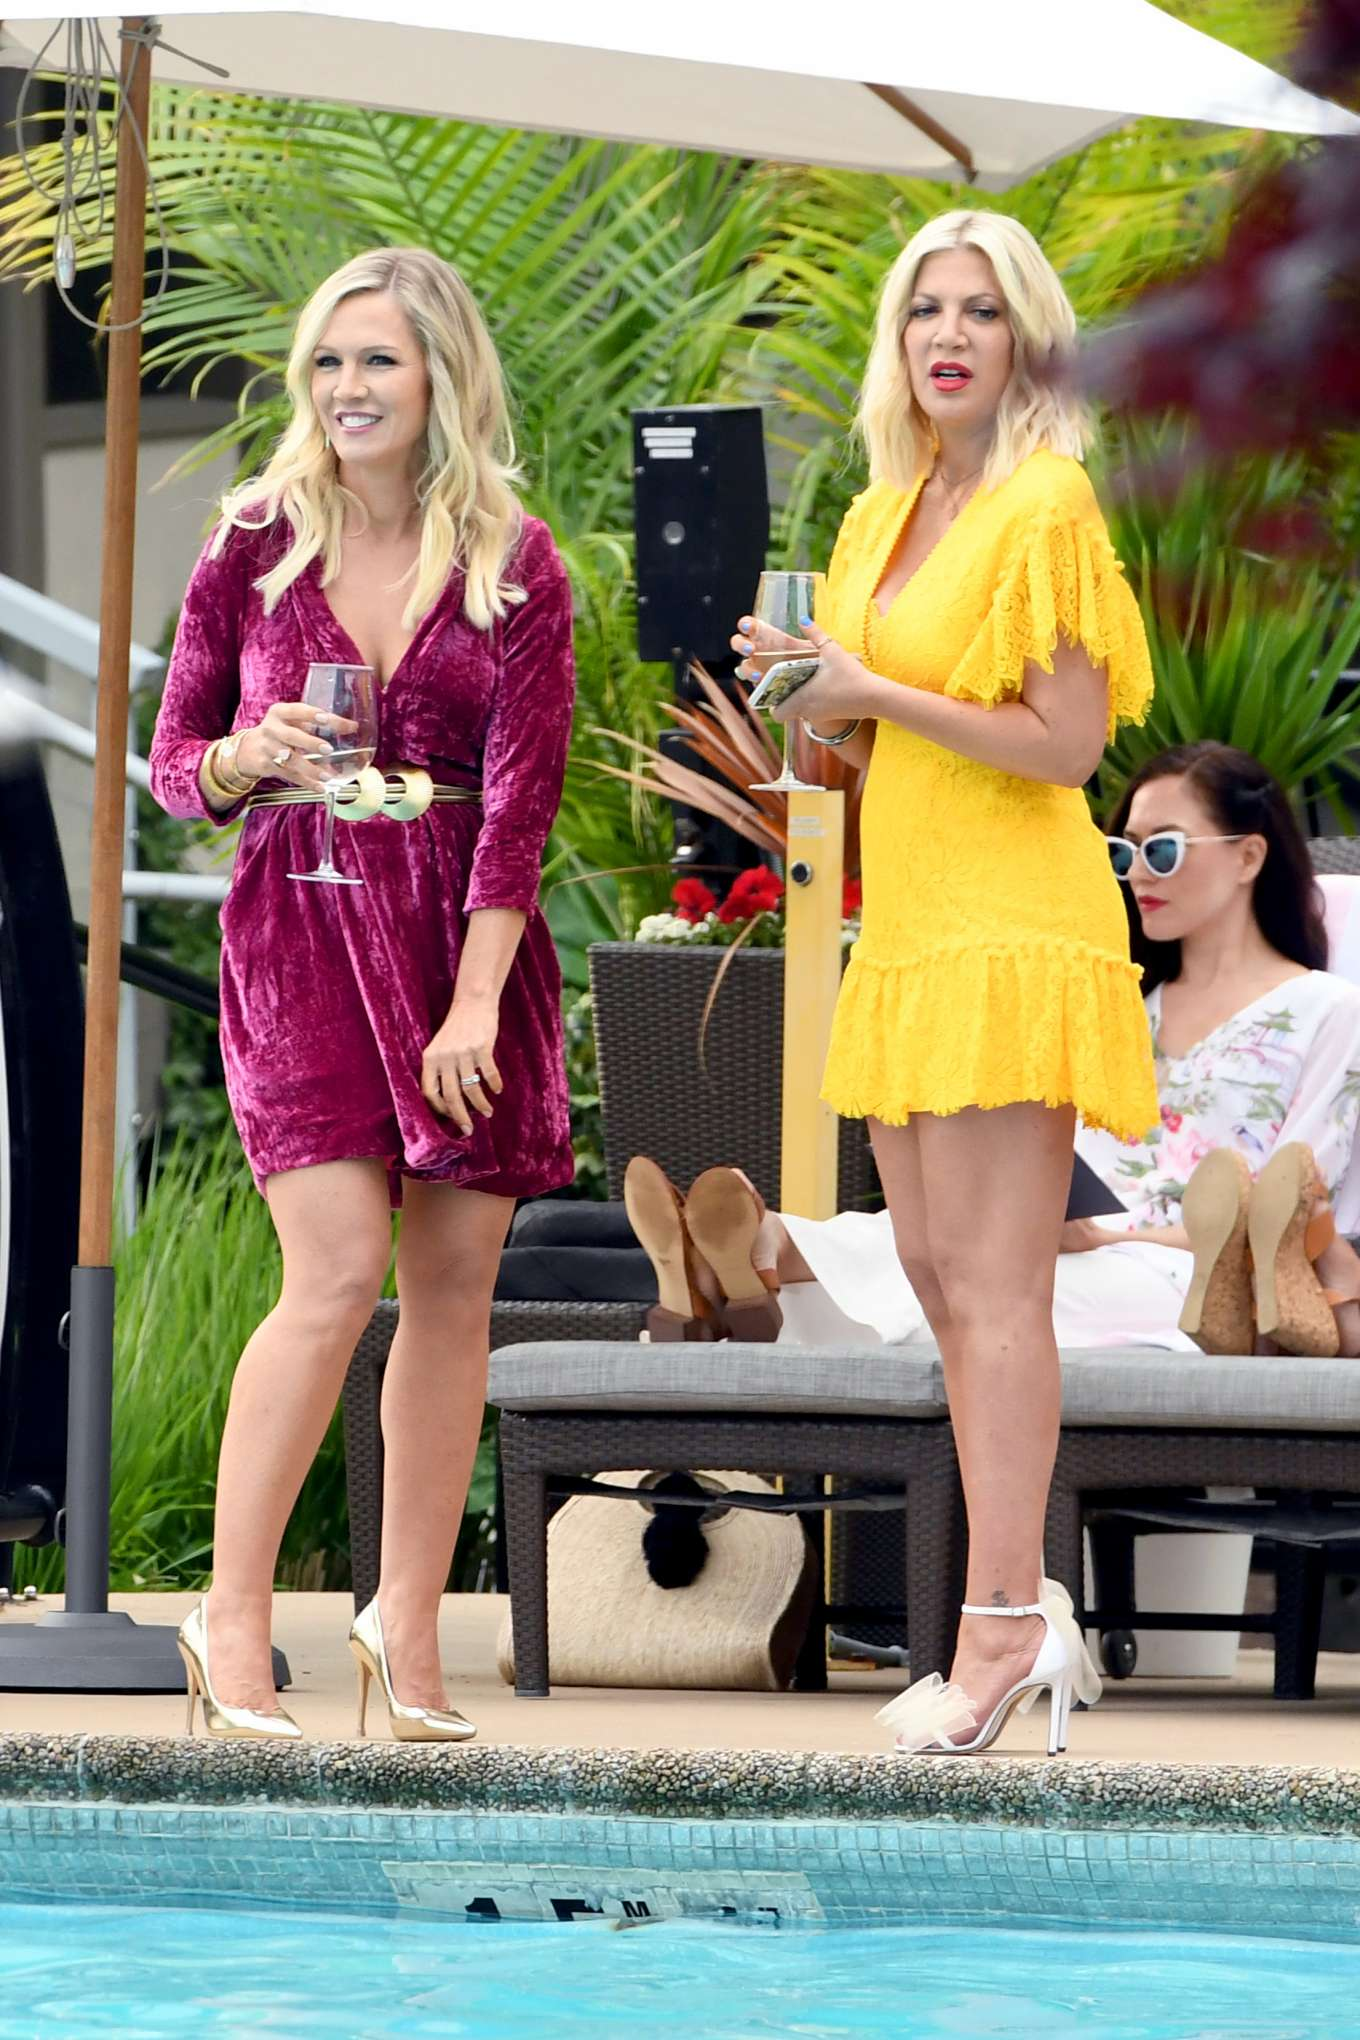 Tori Spelling 2019 : Tori Spelling and Jennie Garth: On the set of Beverly Hills 90210-06